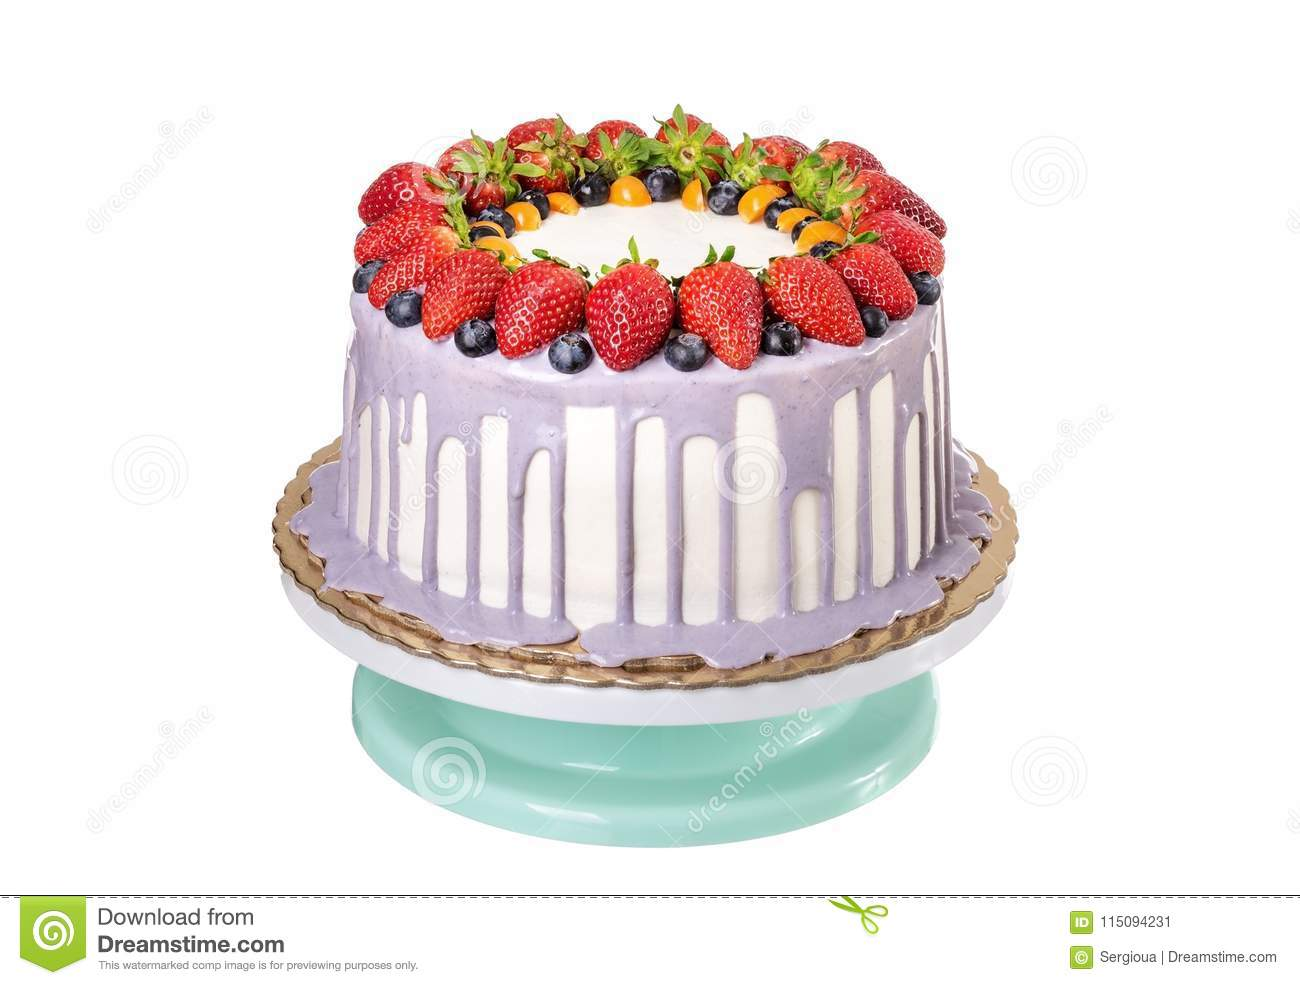 Delicious Fruit Cake Made With Strawberries And Berries On Birthday